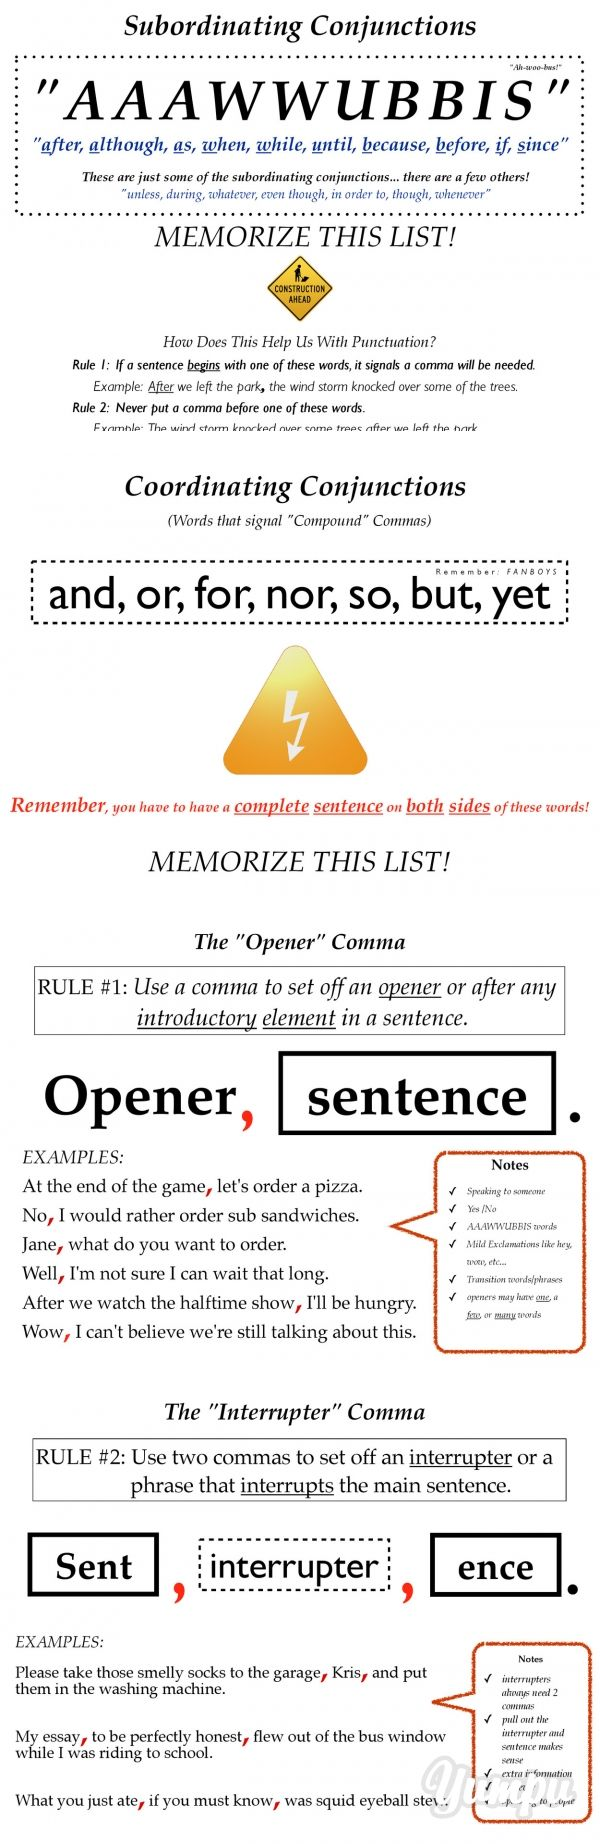 best images about esl writing writing prompts subordinating conjunctions memorize this list subordinating conjunctions memorize this list